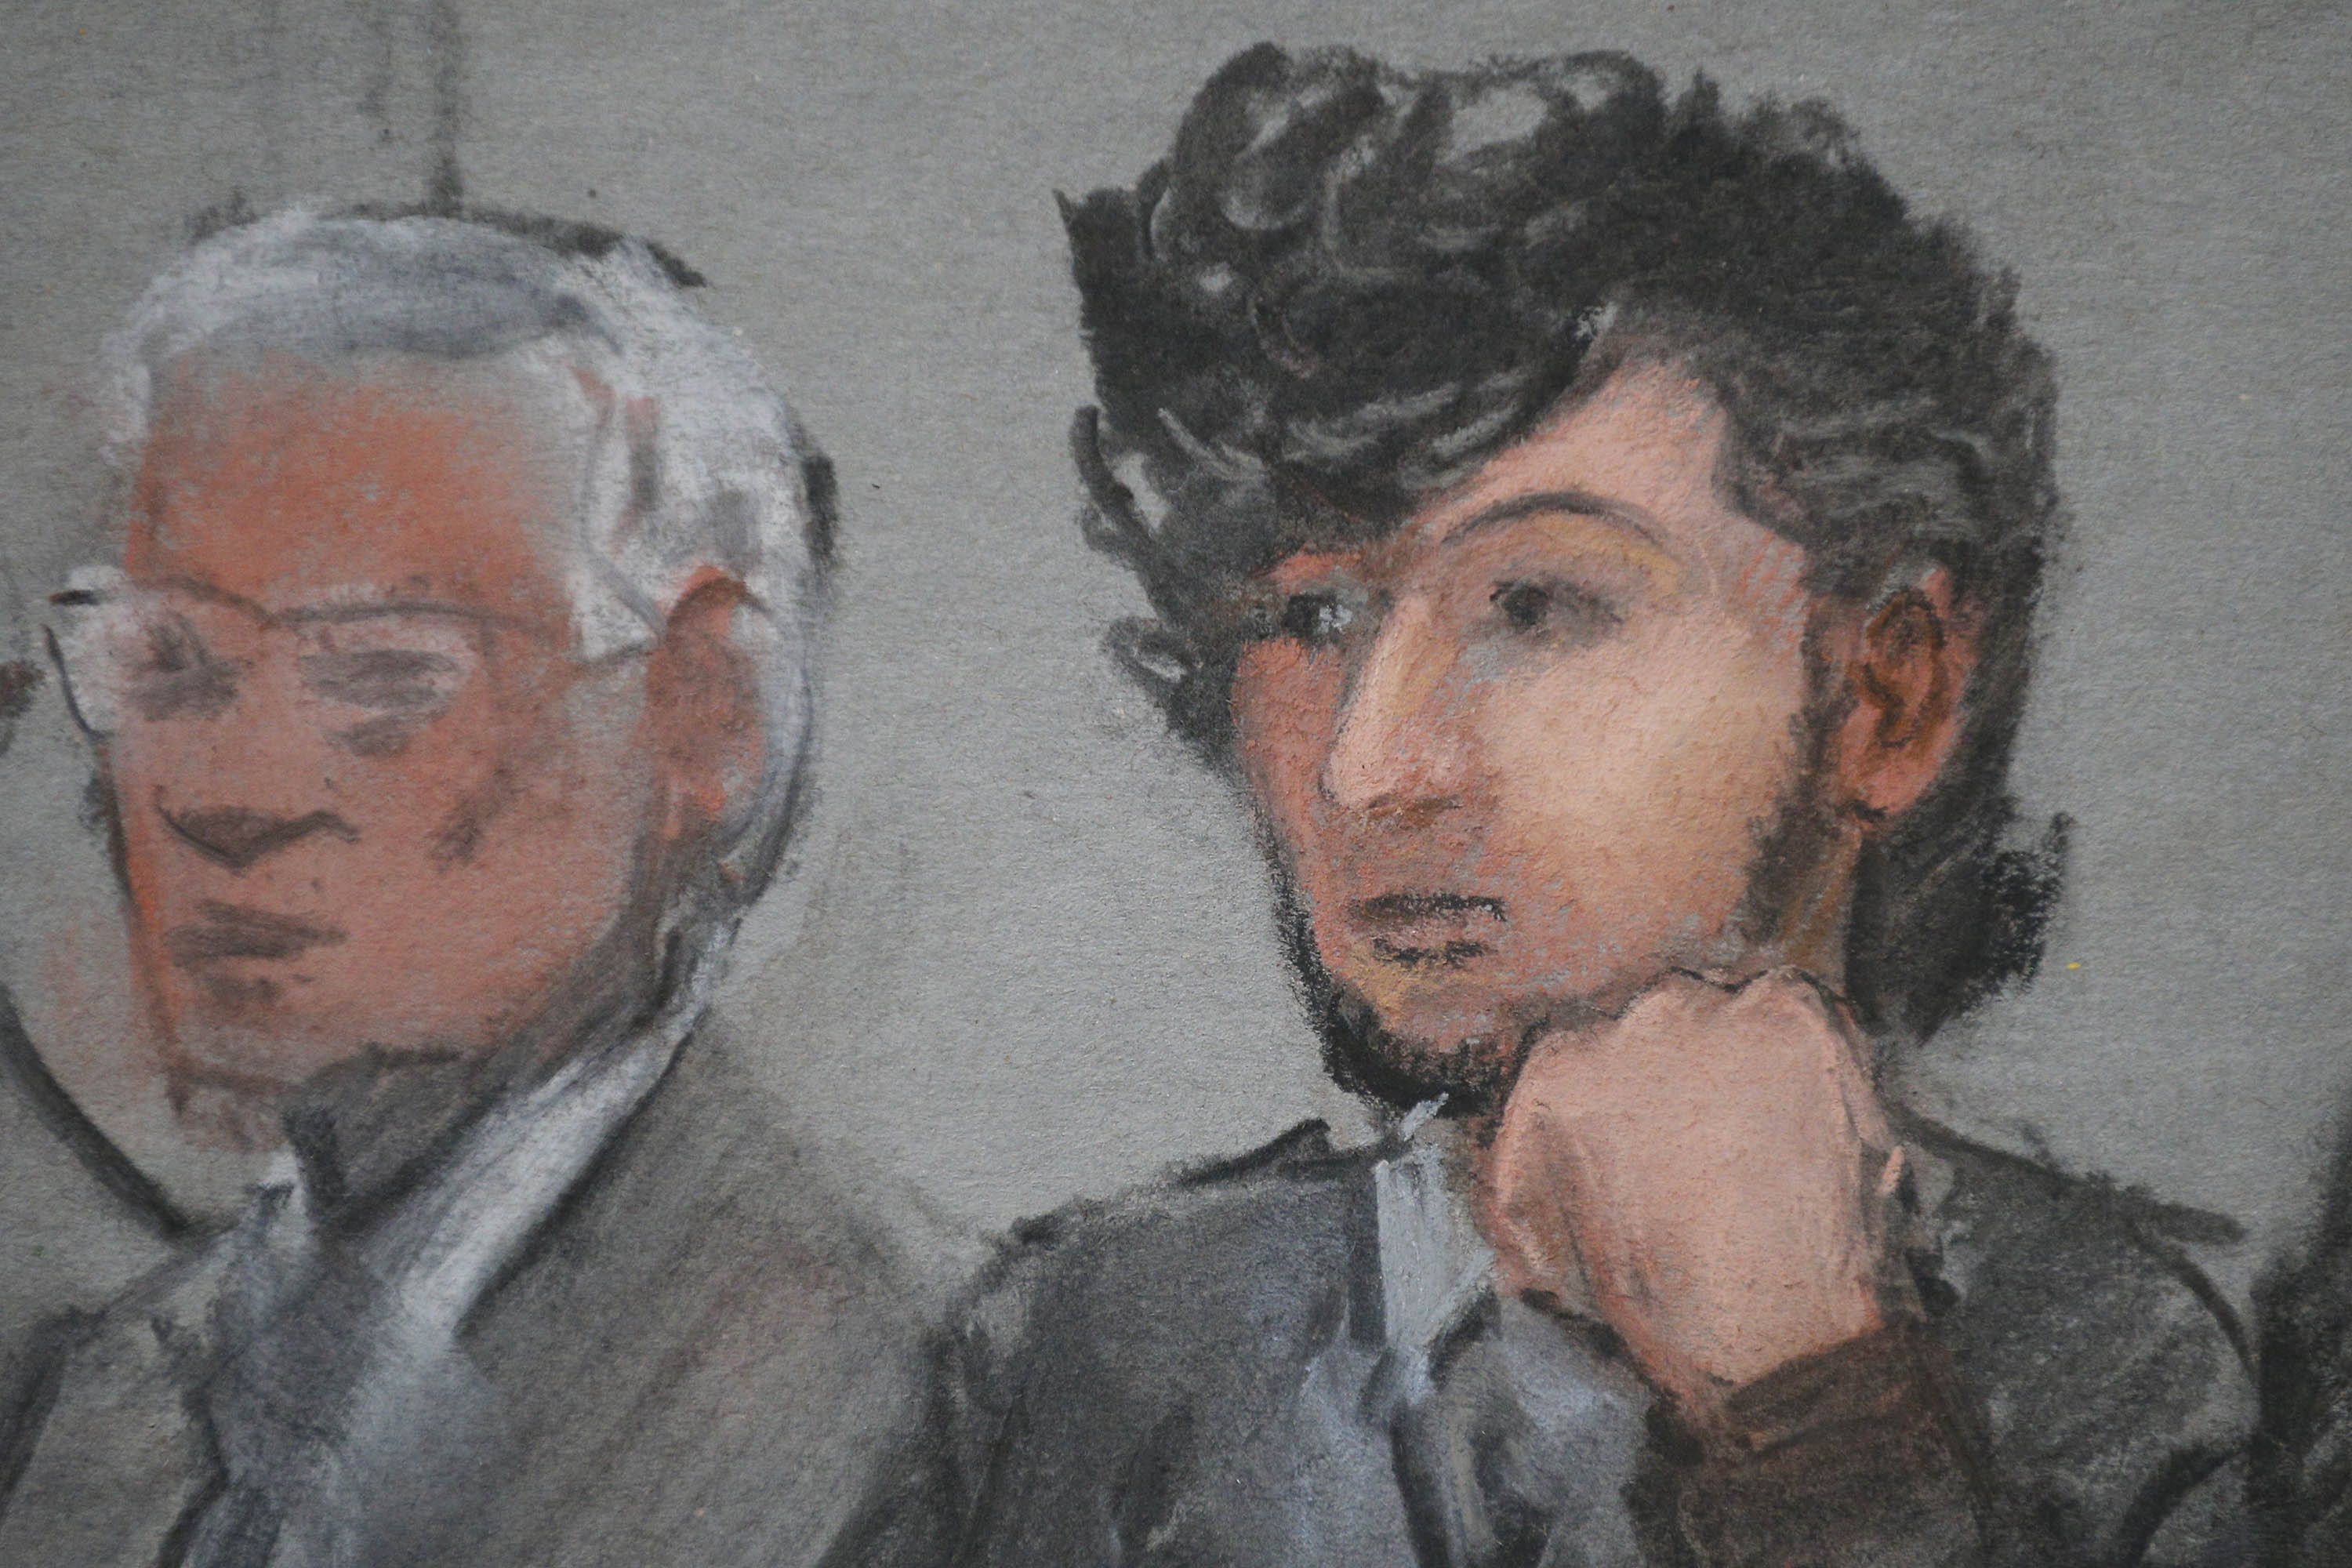 Accused Boston Marathon bomber Dzhokhar Tsarnaev is shown in a courtroom sketch on the first day of jury selection at the federal courthouse in Boston, Massachusetts, on January 5, 2015.